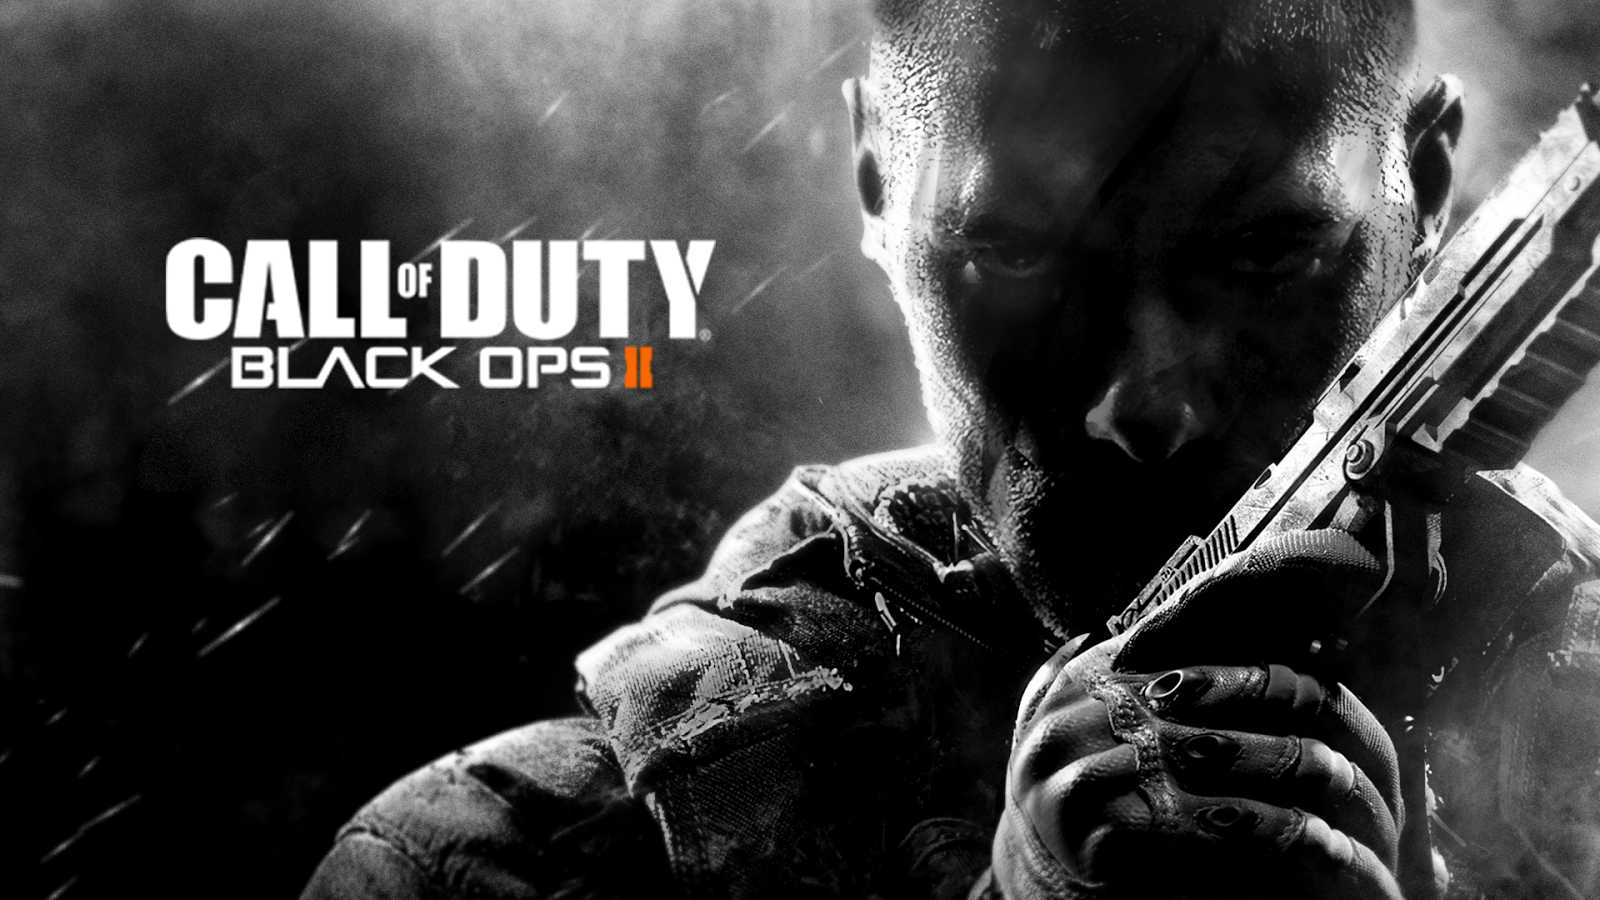 Call Of Duty Black Ops 2 HD Wallpapers - Walls720